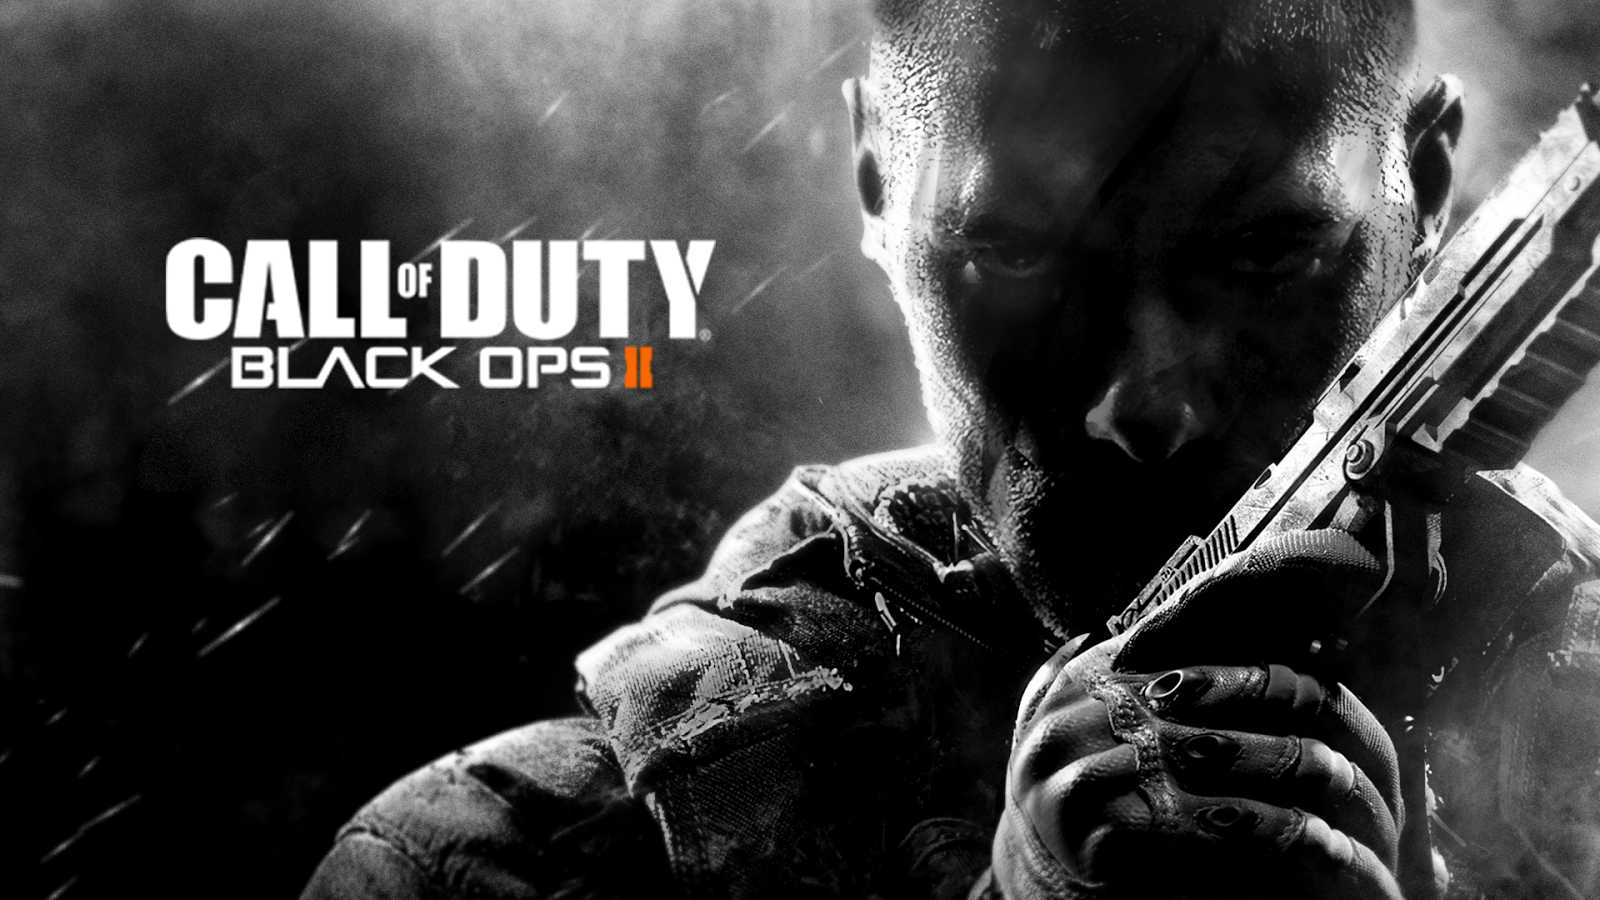 Call Of Duty Black Ops 2 HD Wallpapers - Walls720